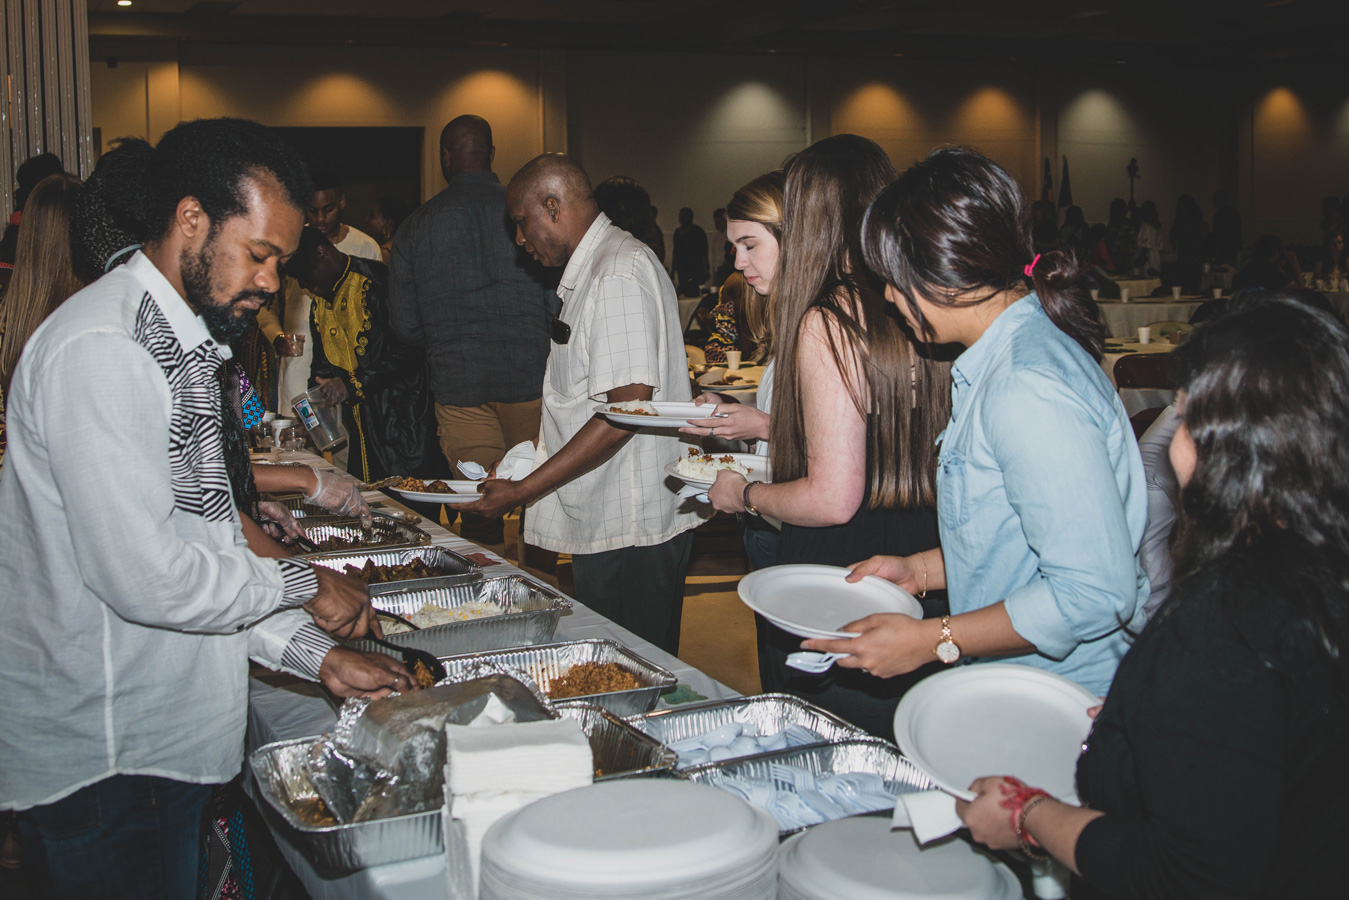 People lined up a buffet at African MegaFest